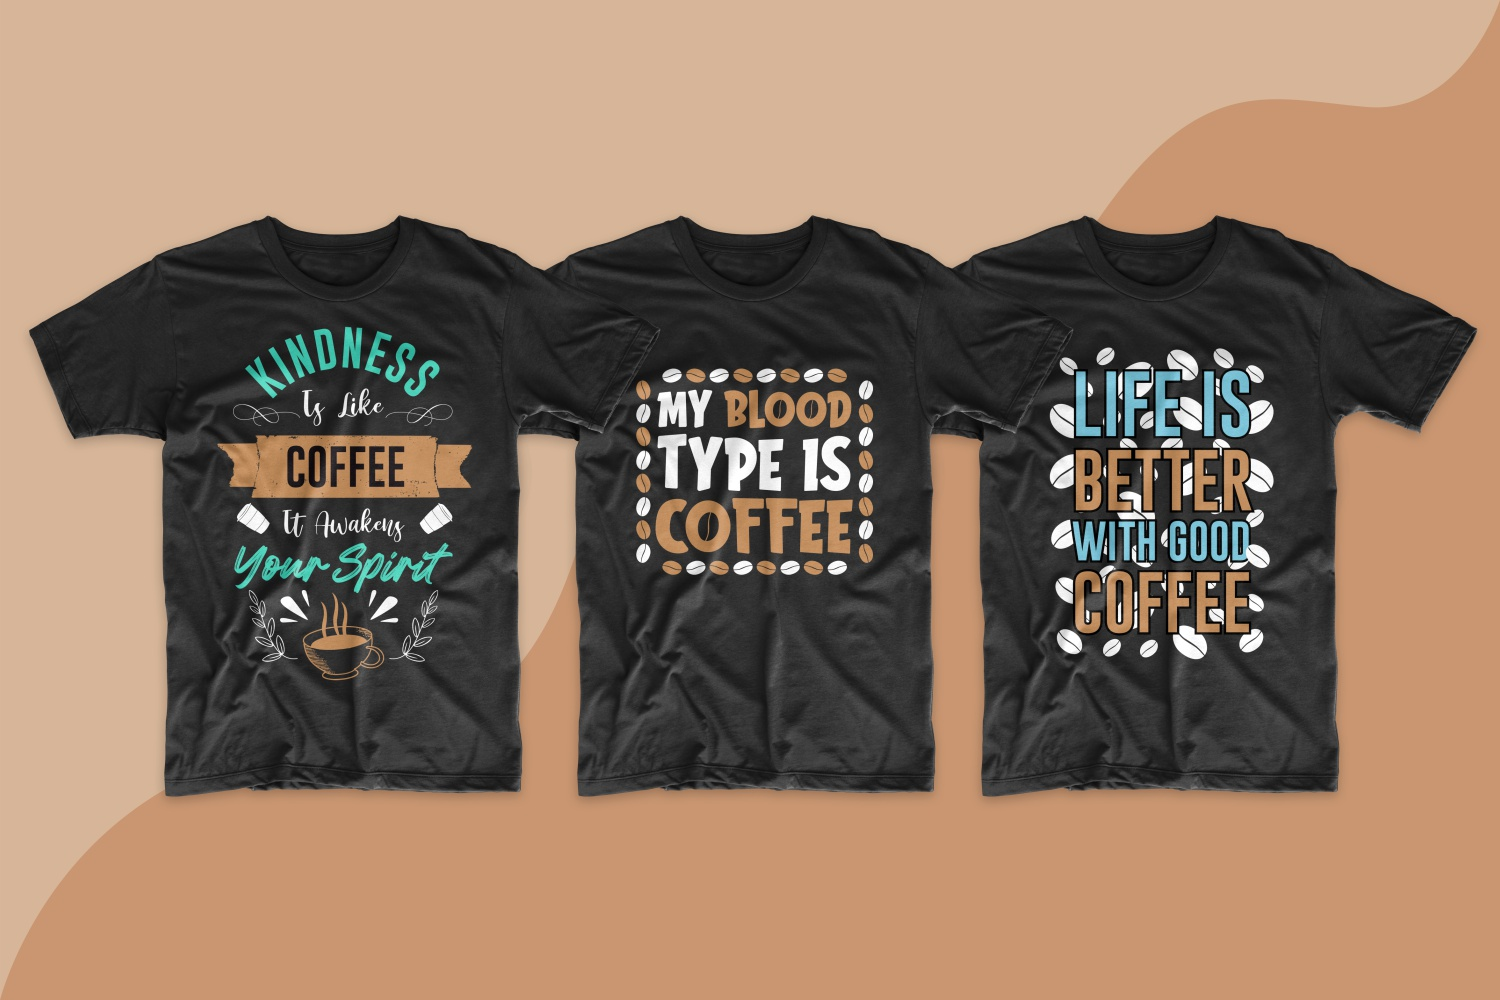 Classic men's T-shirts in dark color with red beans and funny coffee lovers' slogans.